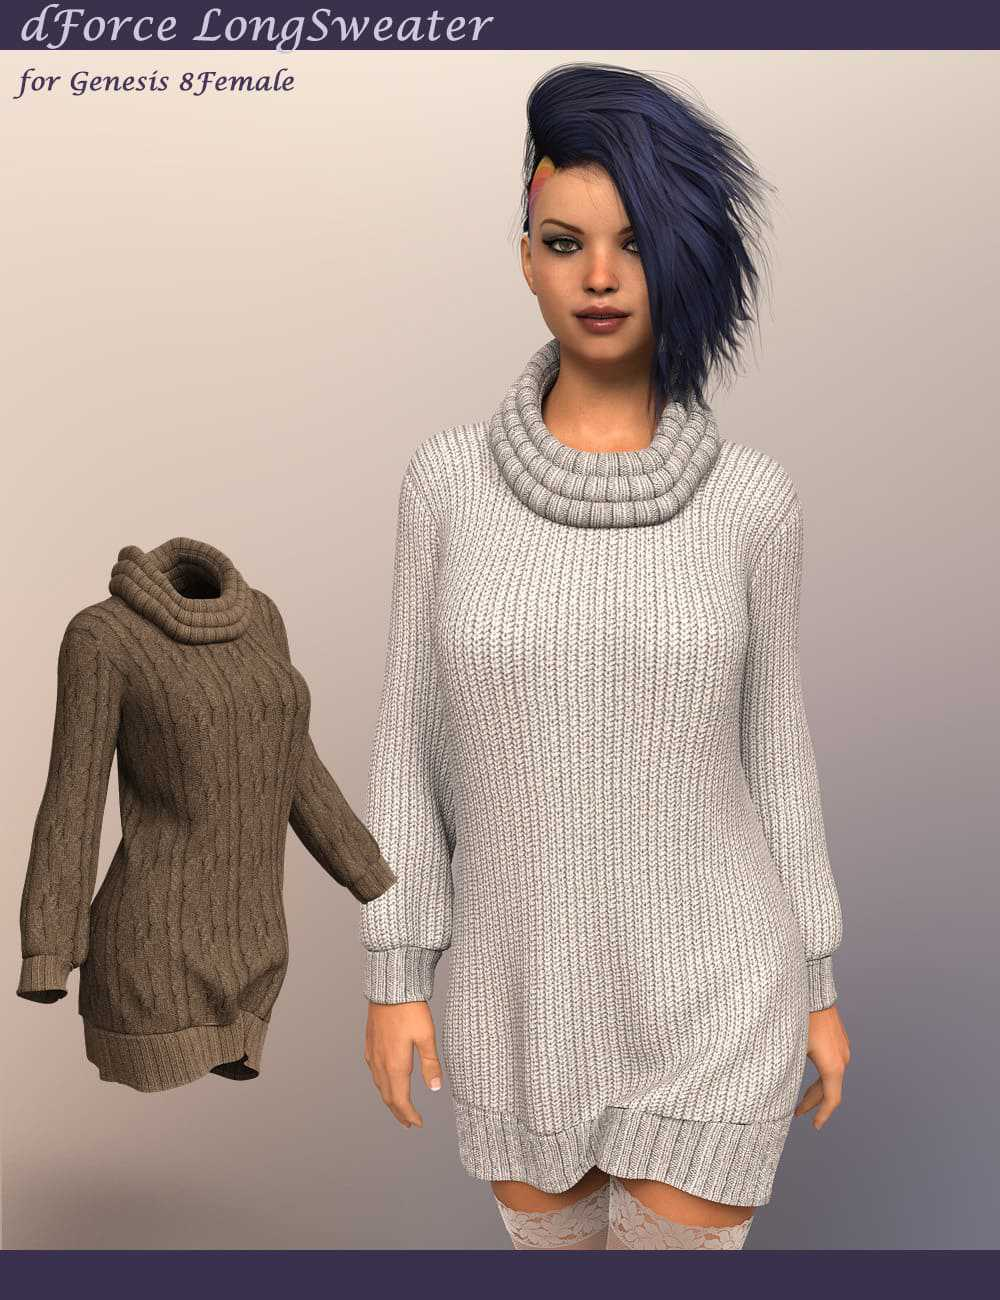 dForce LongSweater for Genesis 8 Female